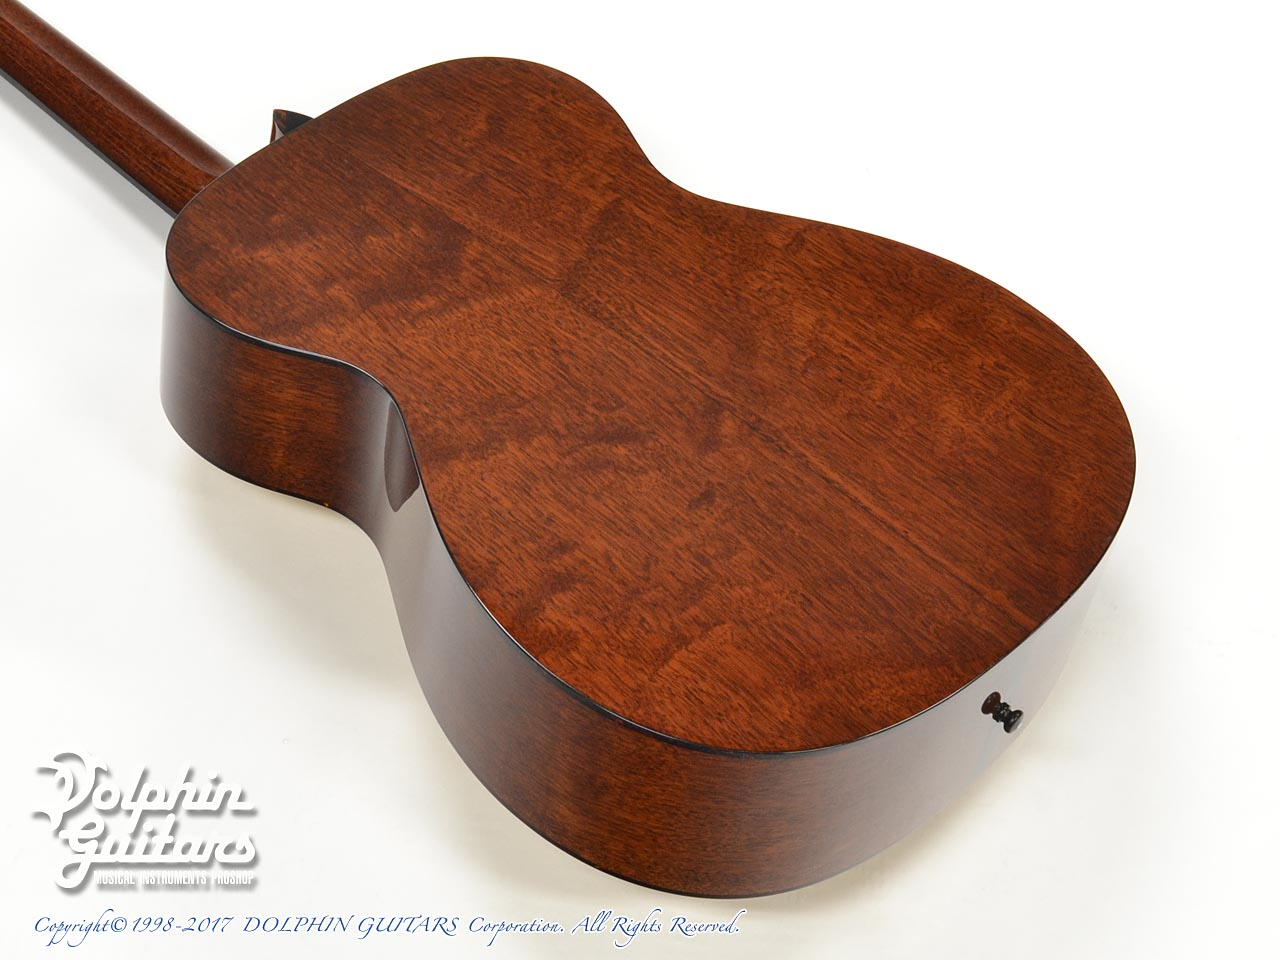 SWITCH: SC00-1 A-VH Limited (Adirondack Spruce & Vintage Honduras Mahogany) (3)